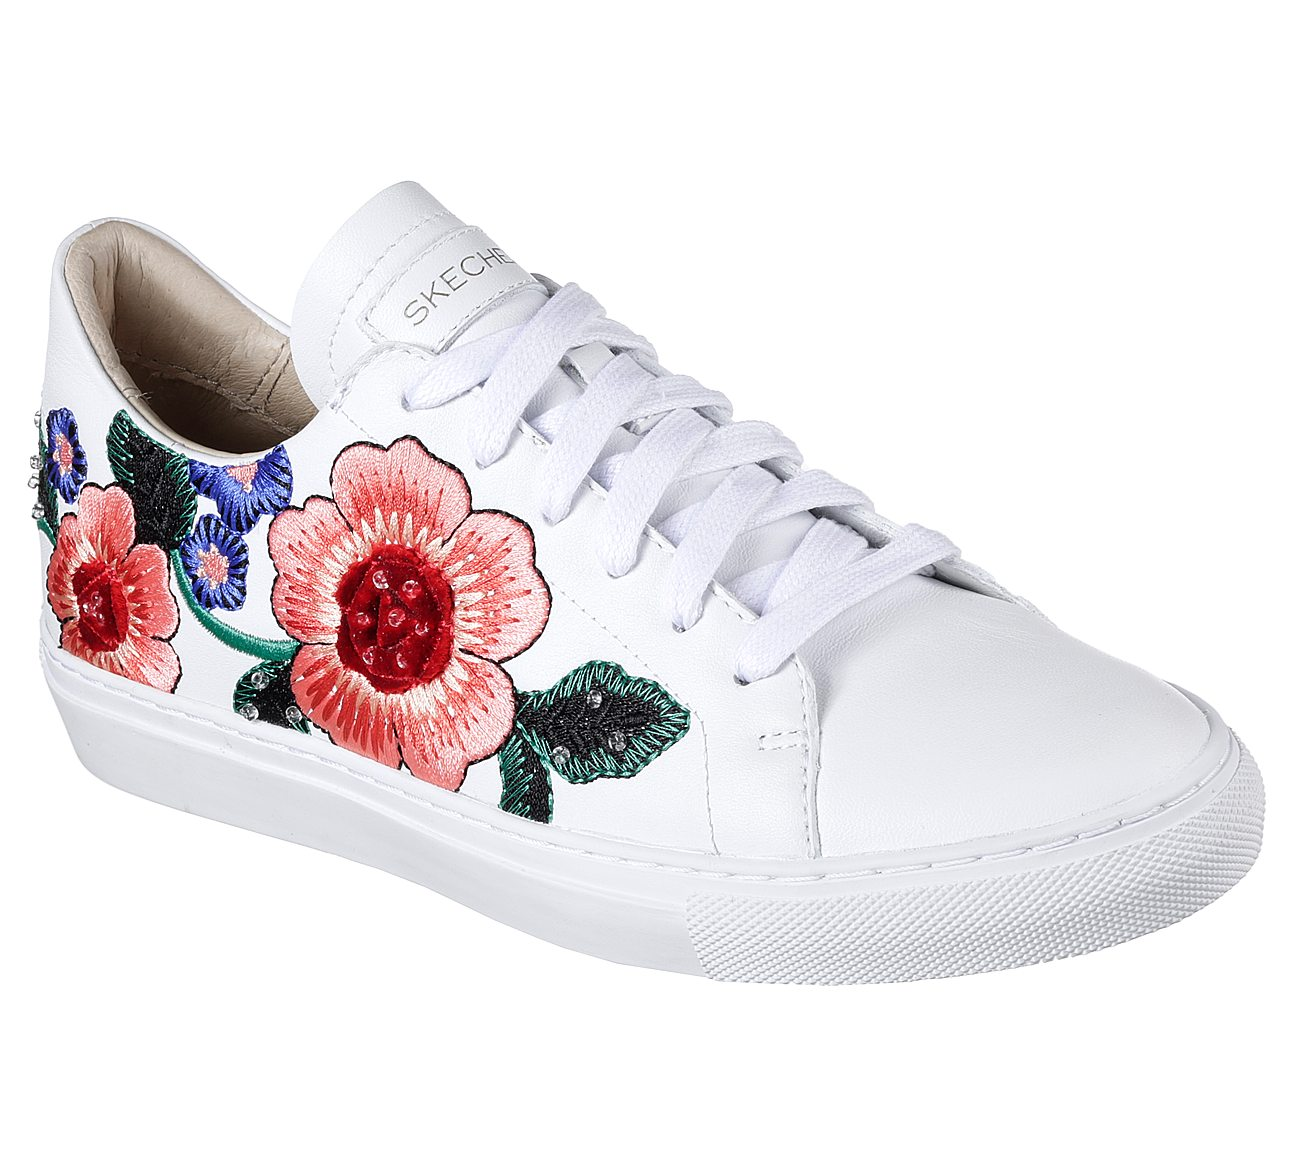 Buy Skechers Vaso Flor Modern Comfort Shoes Only 65 00